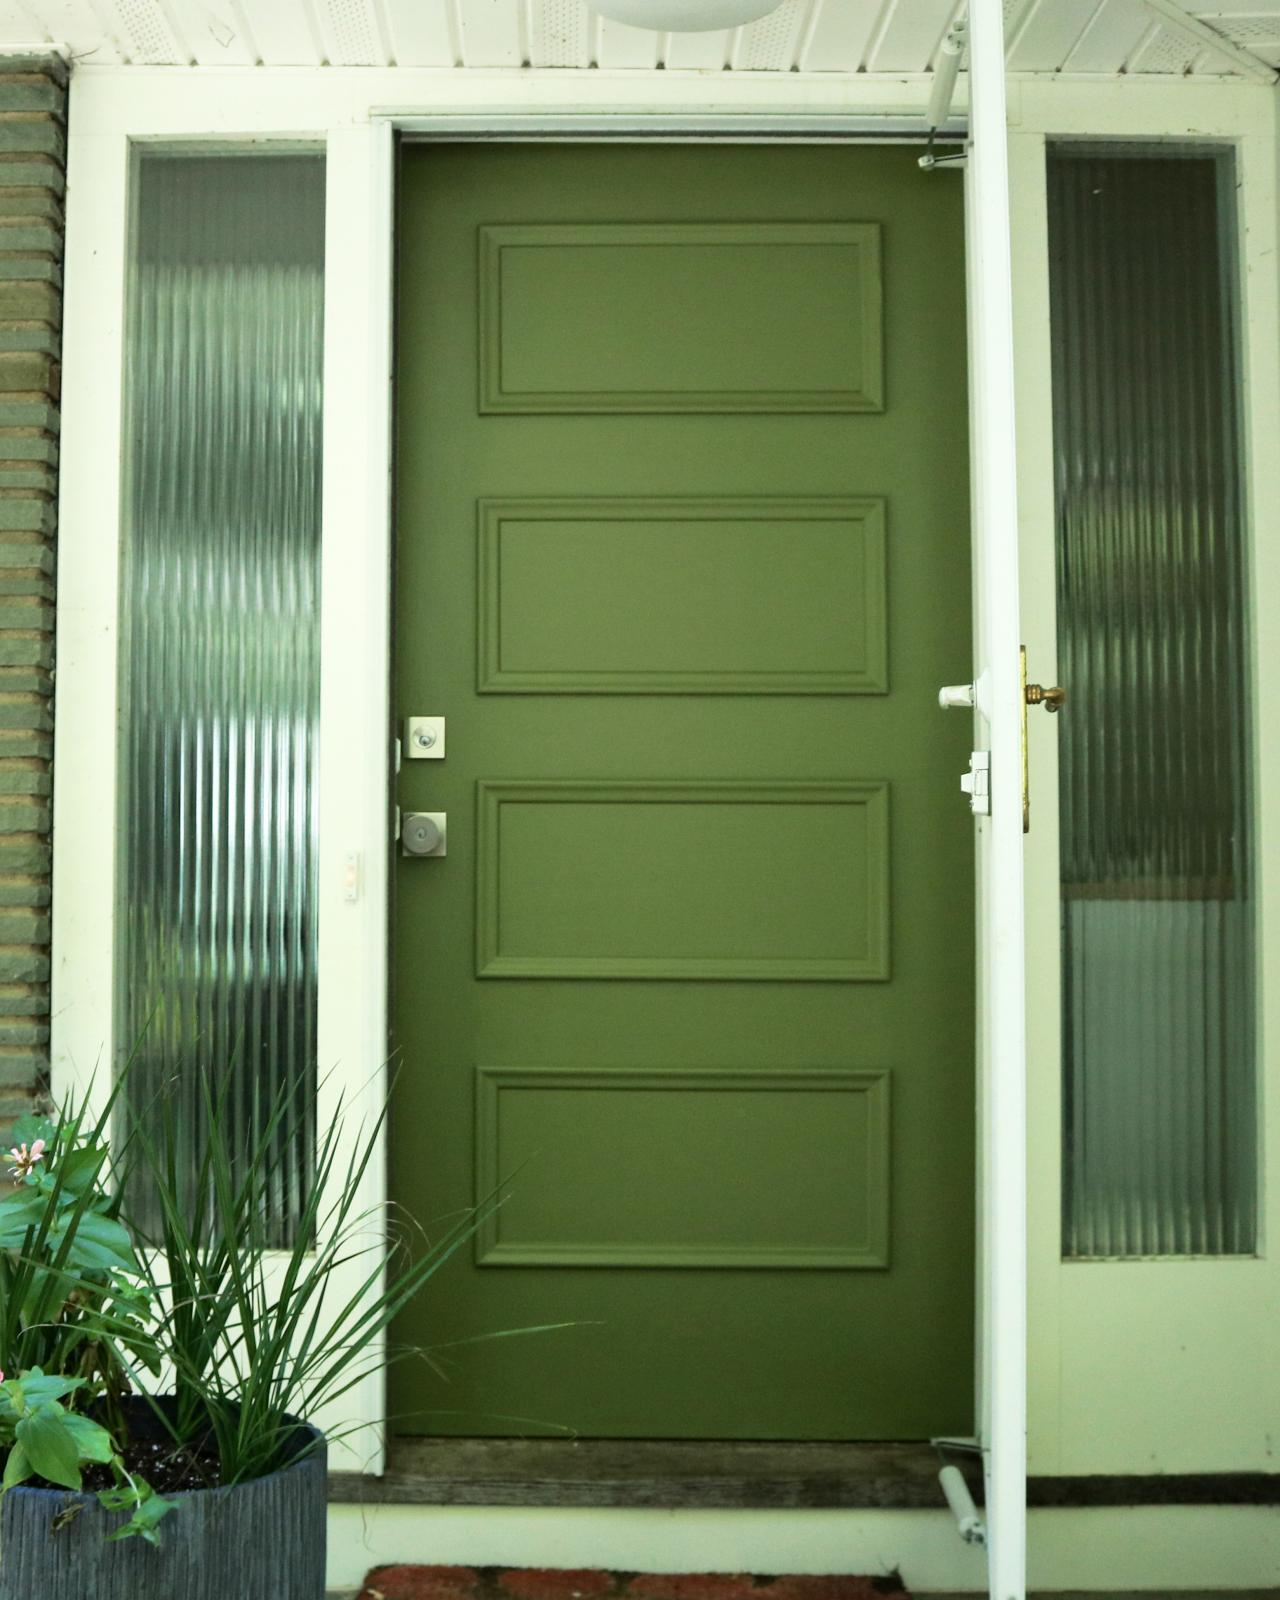 Learn how to paint your front door how tos diy - Painting a steel exterior door model ...